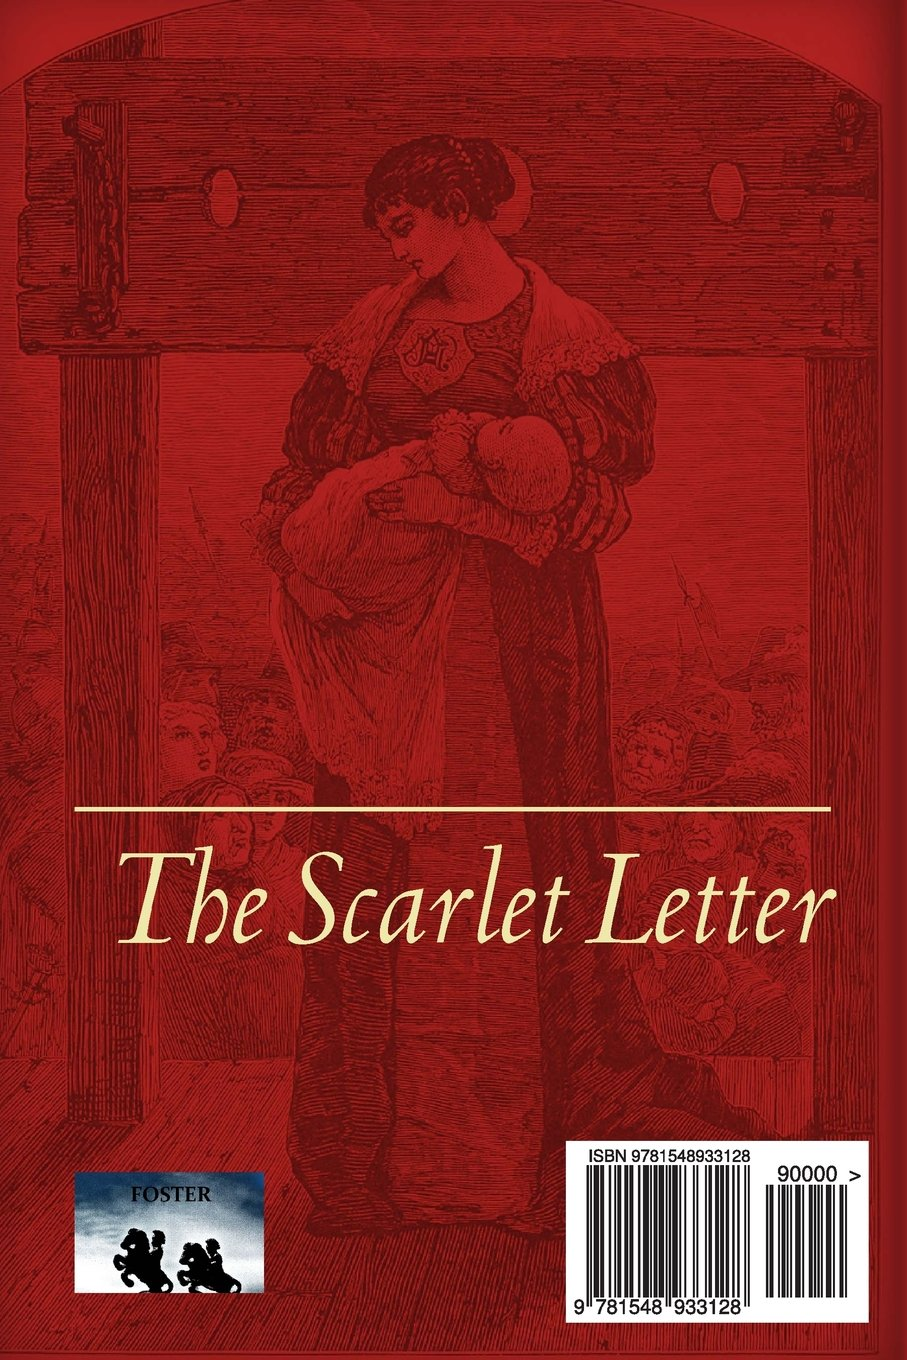 The Scarlet Letter Book Review Motolani Oyafemi